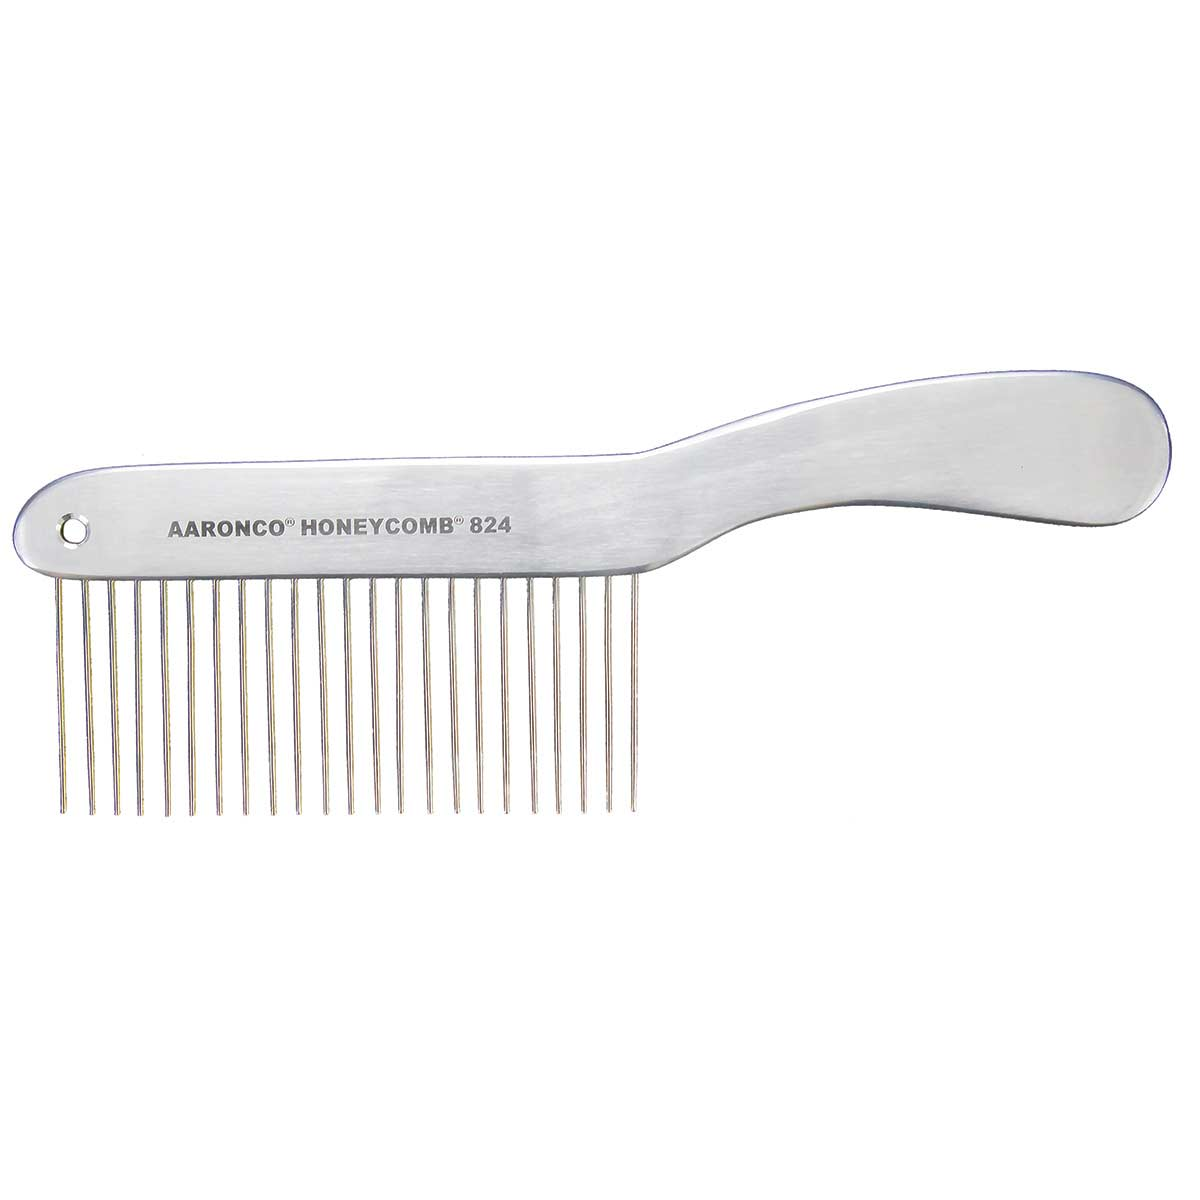 "AARONCO HONEYCOMBS 8.5'' Long Hair Coarse 23 Teeth 1 ¾"" Long Grooming Comb"